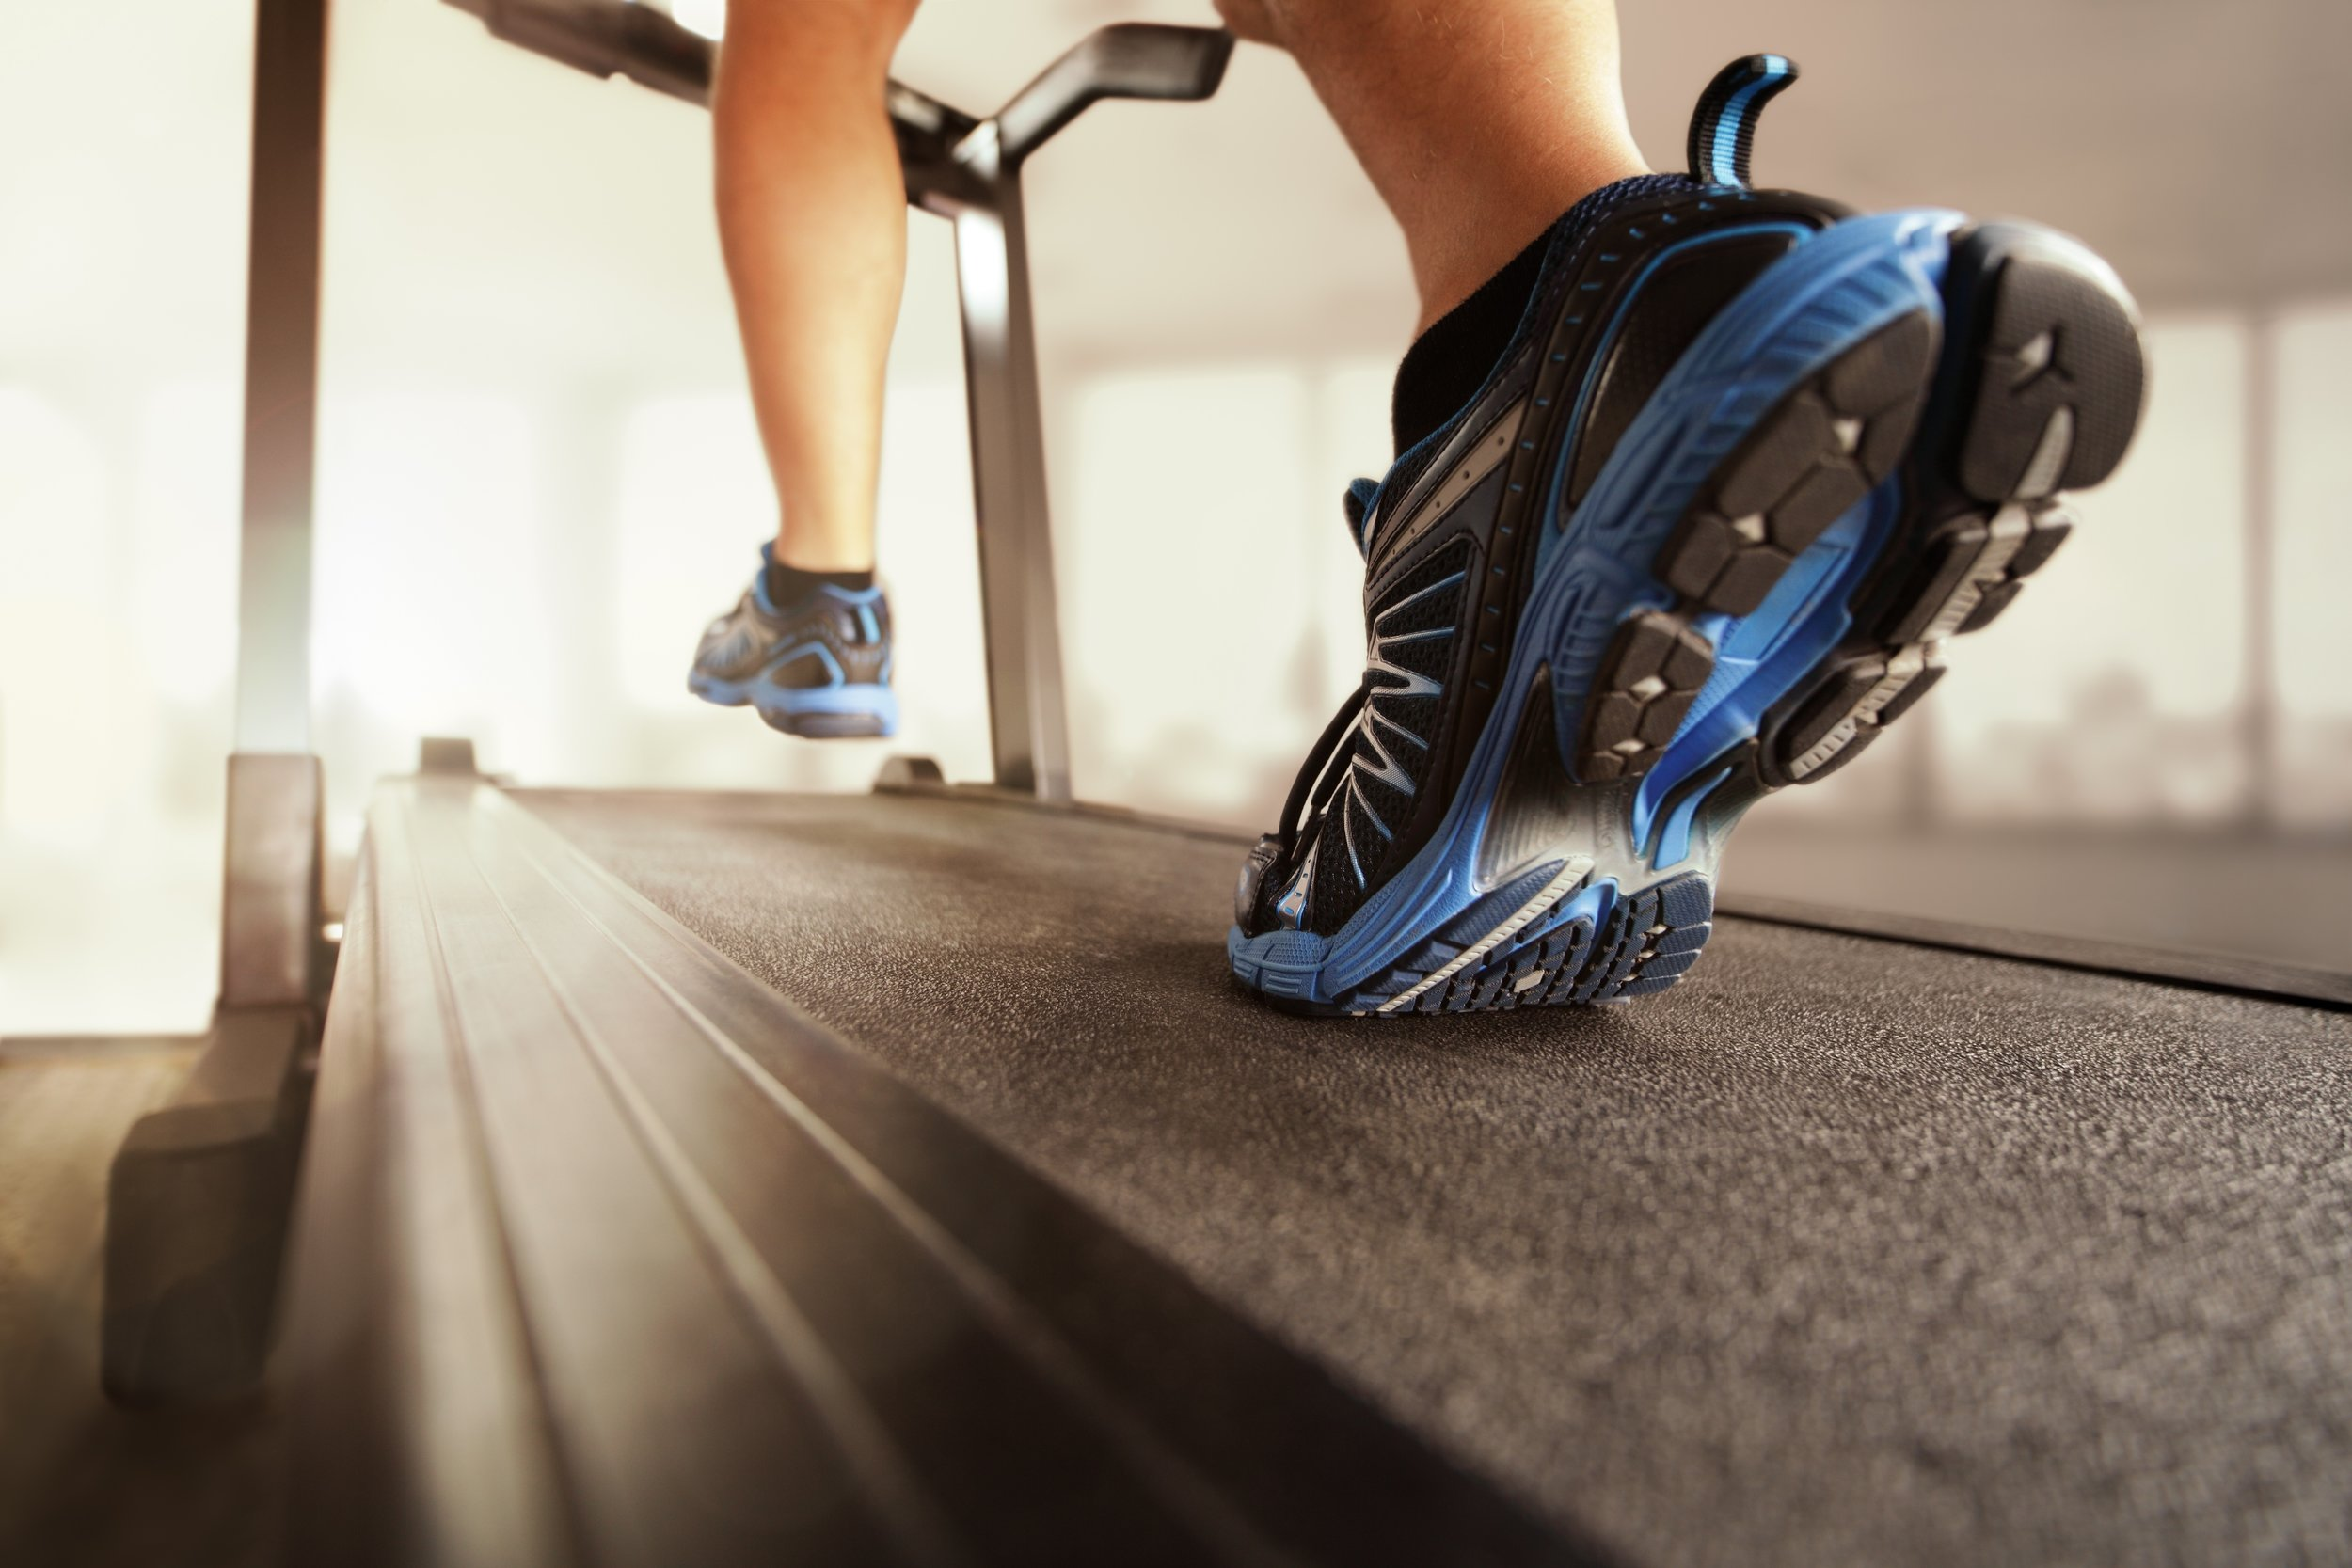 AdobeStock_62225259runner on treadmill.jpg